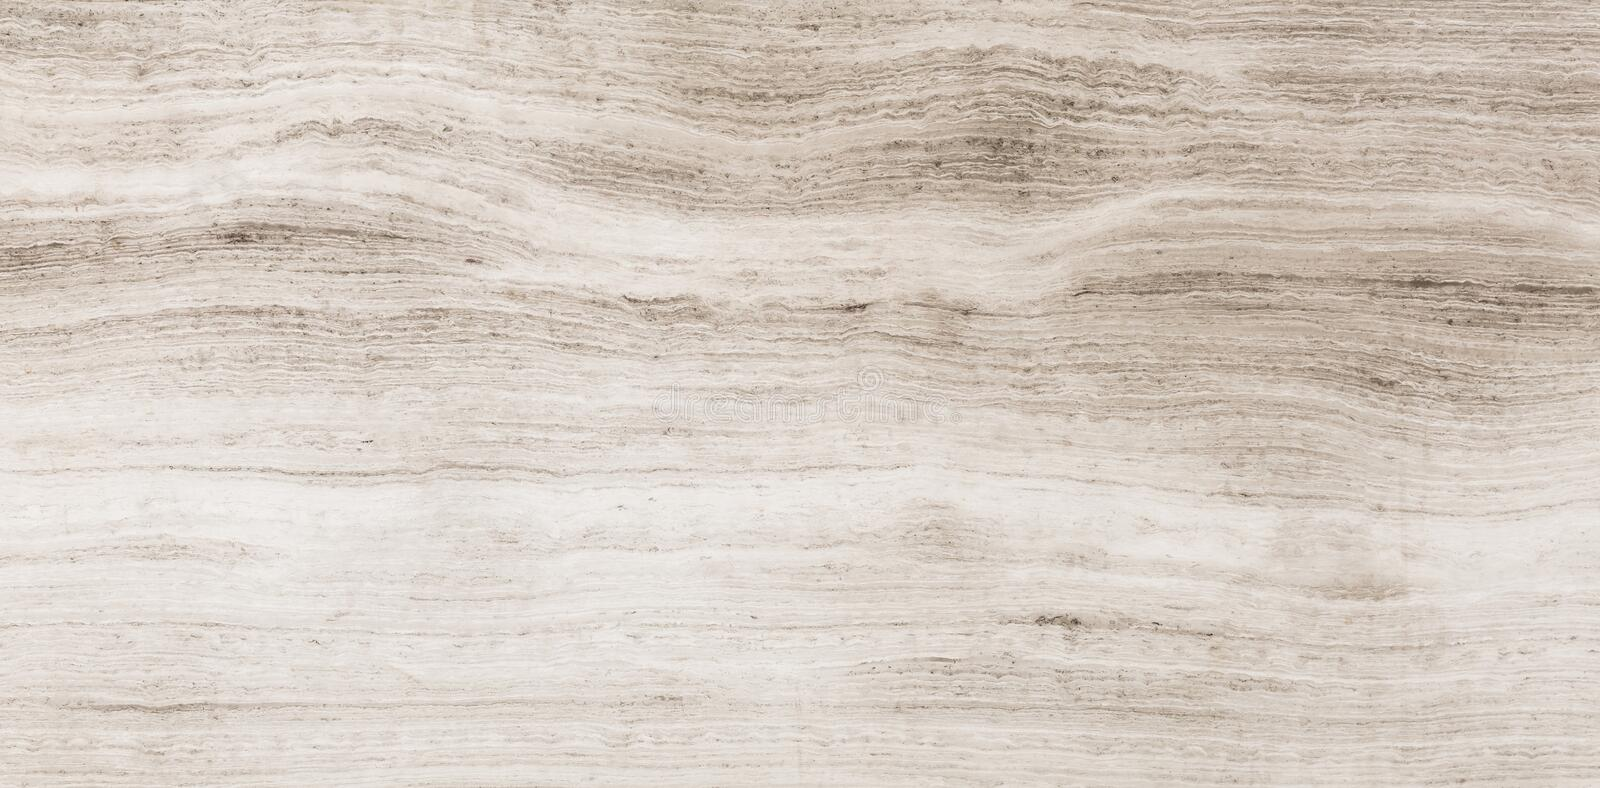 Marble Stone Texture Stock Photo Image 57933083